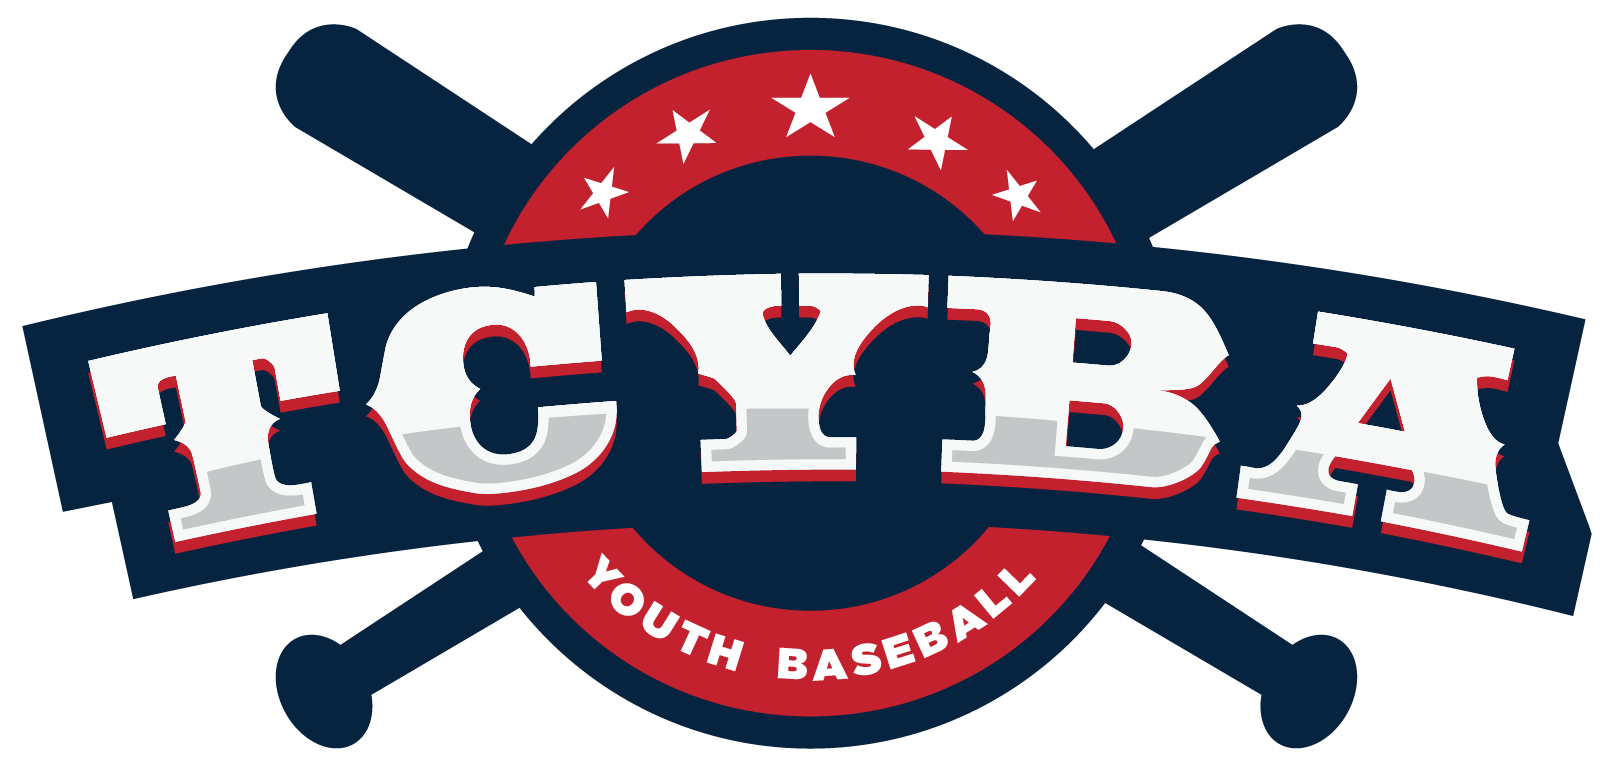 All star baseball clipart svg royalty free download The Colony Youth Baseball Association – Community Built Through baseball svg royalty free download